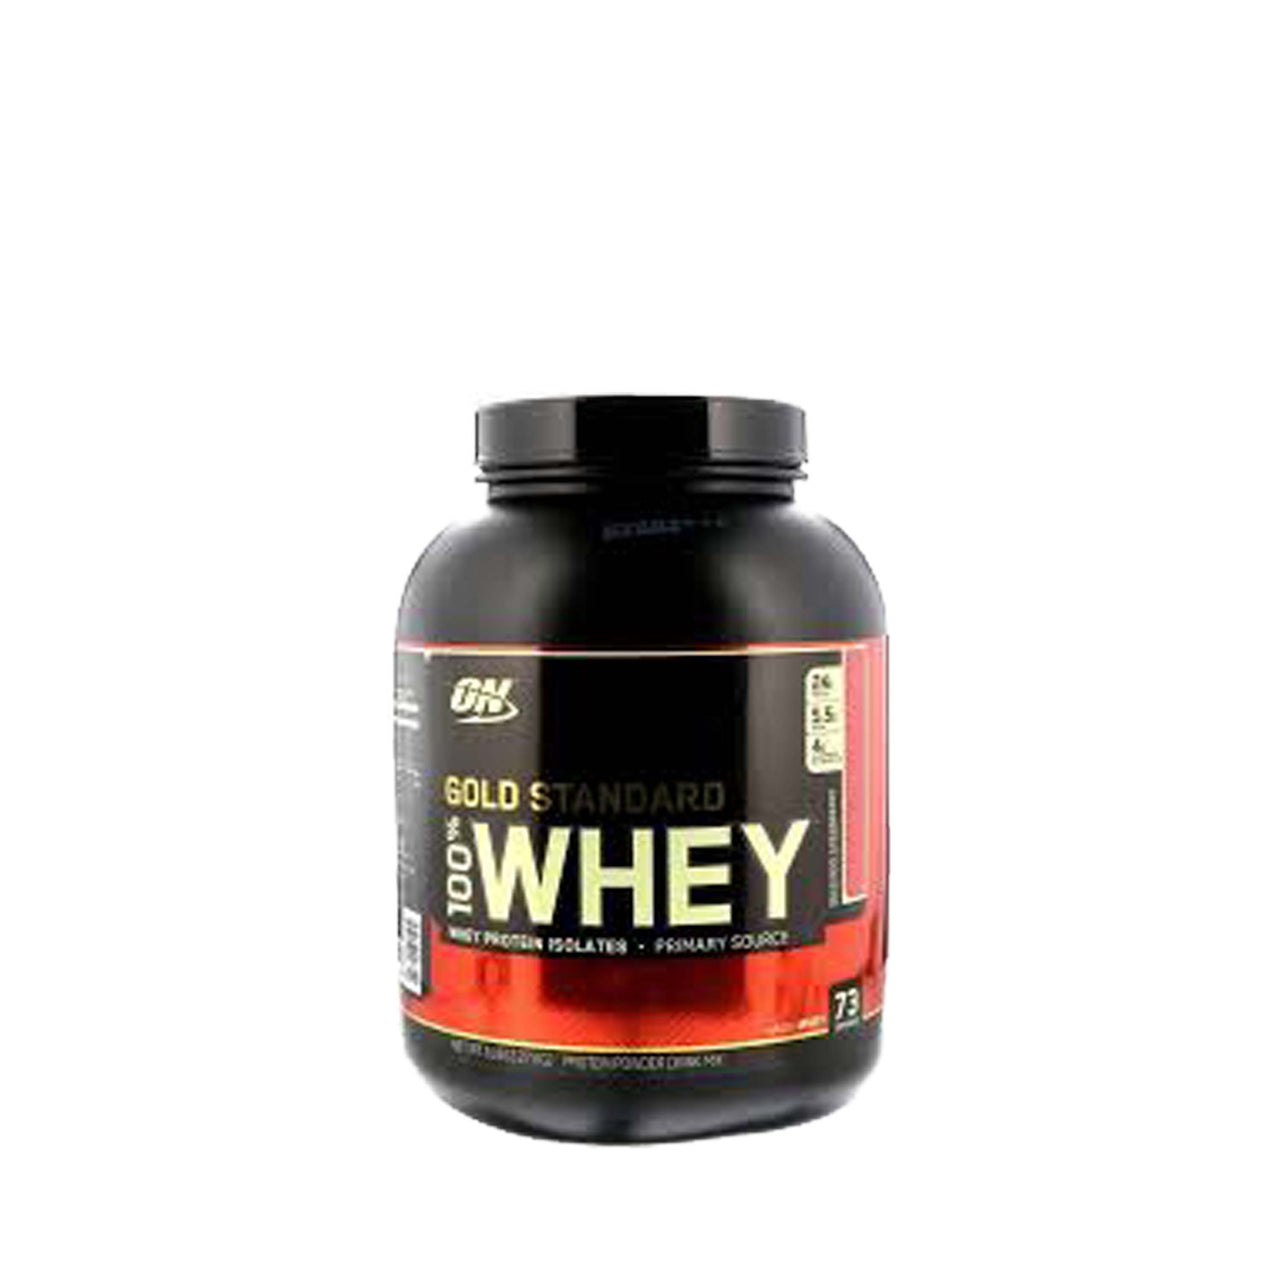 Optimum Nutrition 100% Whey 5lb, Optimum Nutrition - Nutrition Co Australia